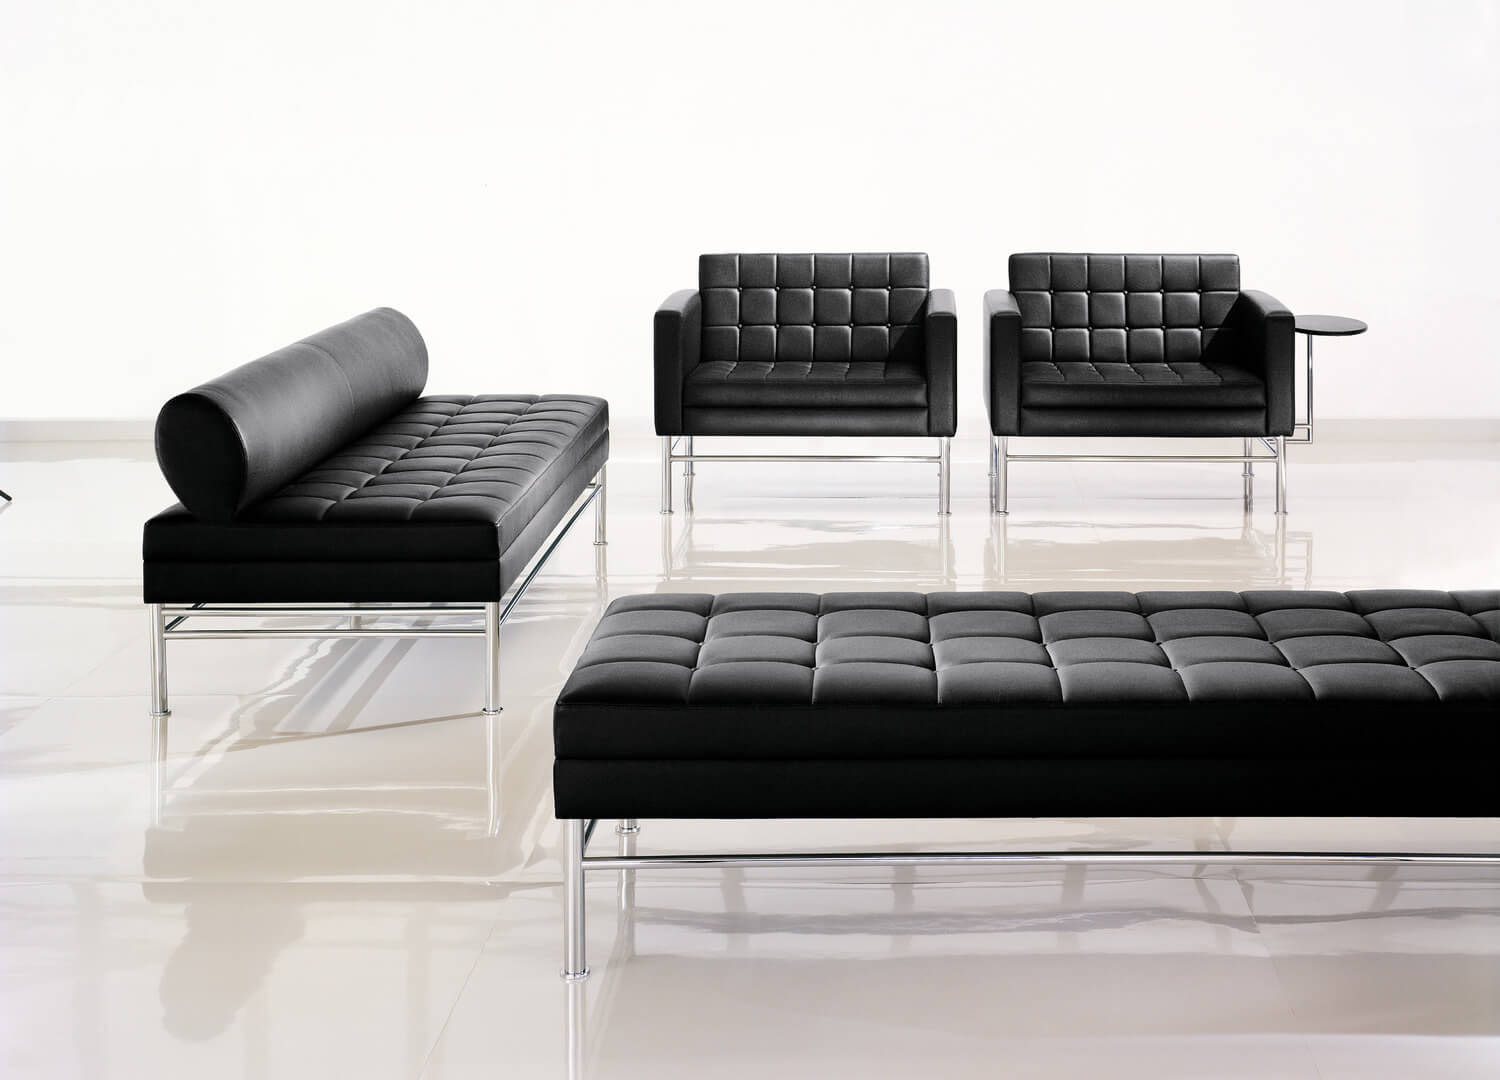 Lounge Soft Seating Schroeder Solutions